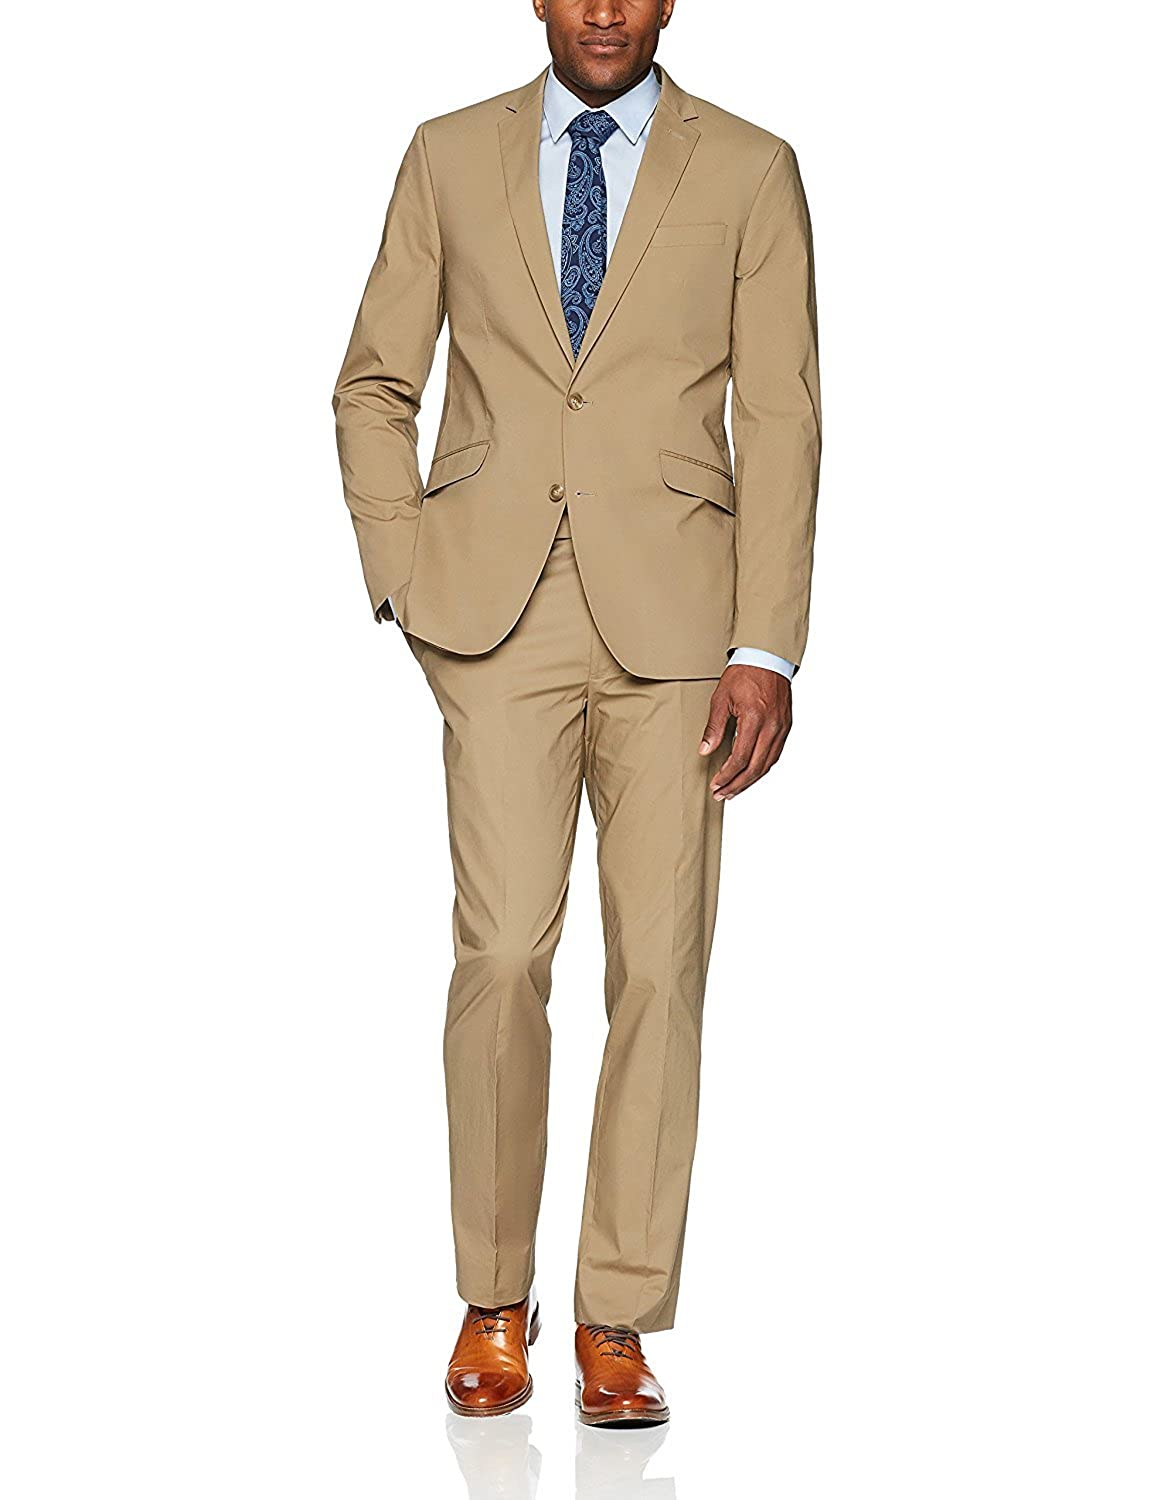 Lilis Men's Two Button Designer Light Weight Suit with Hemmed Pant Set Suit LL18061501